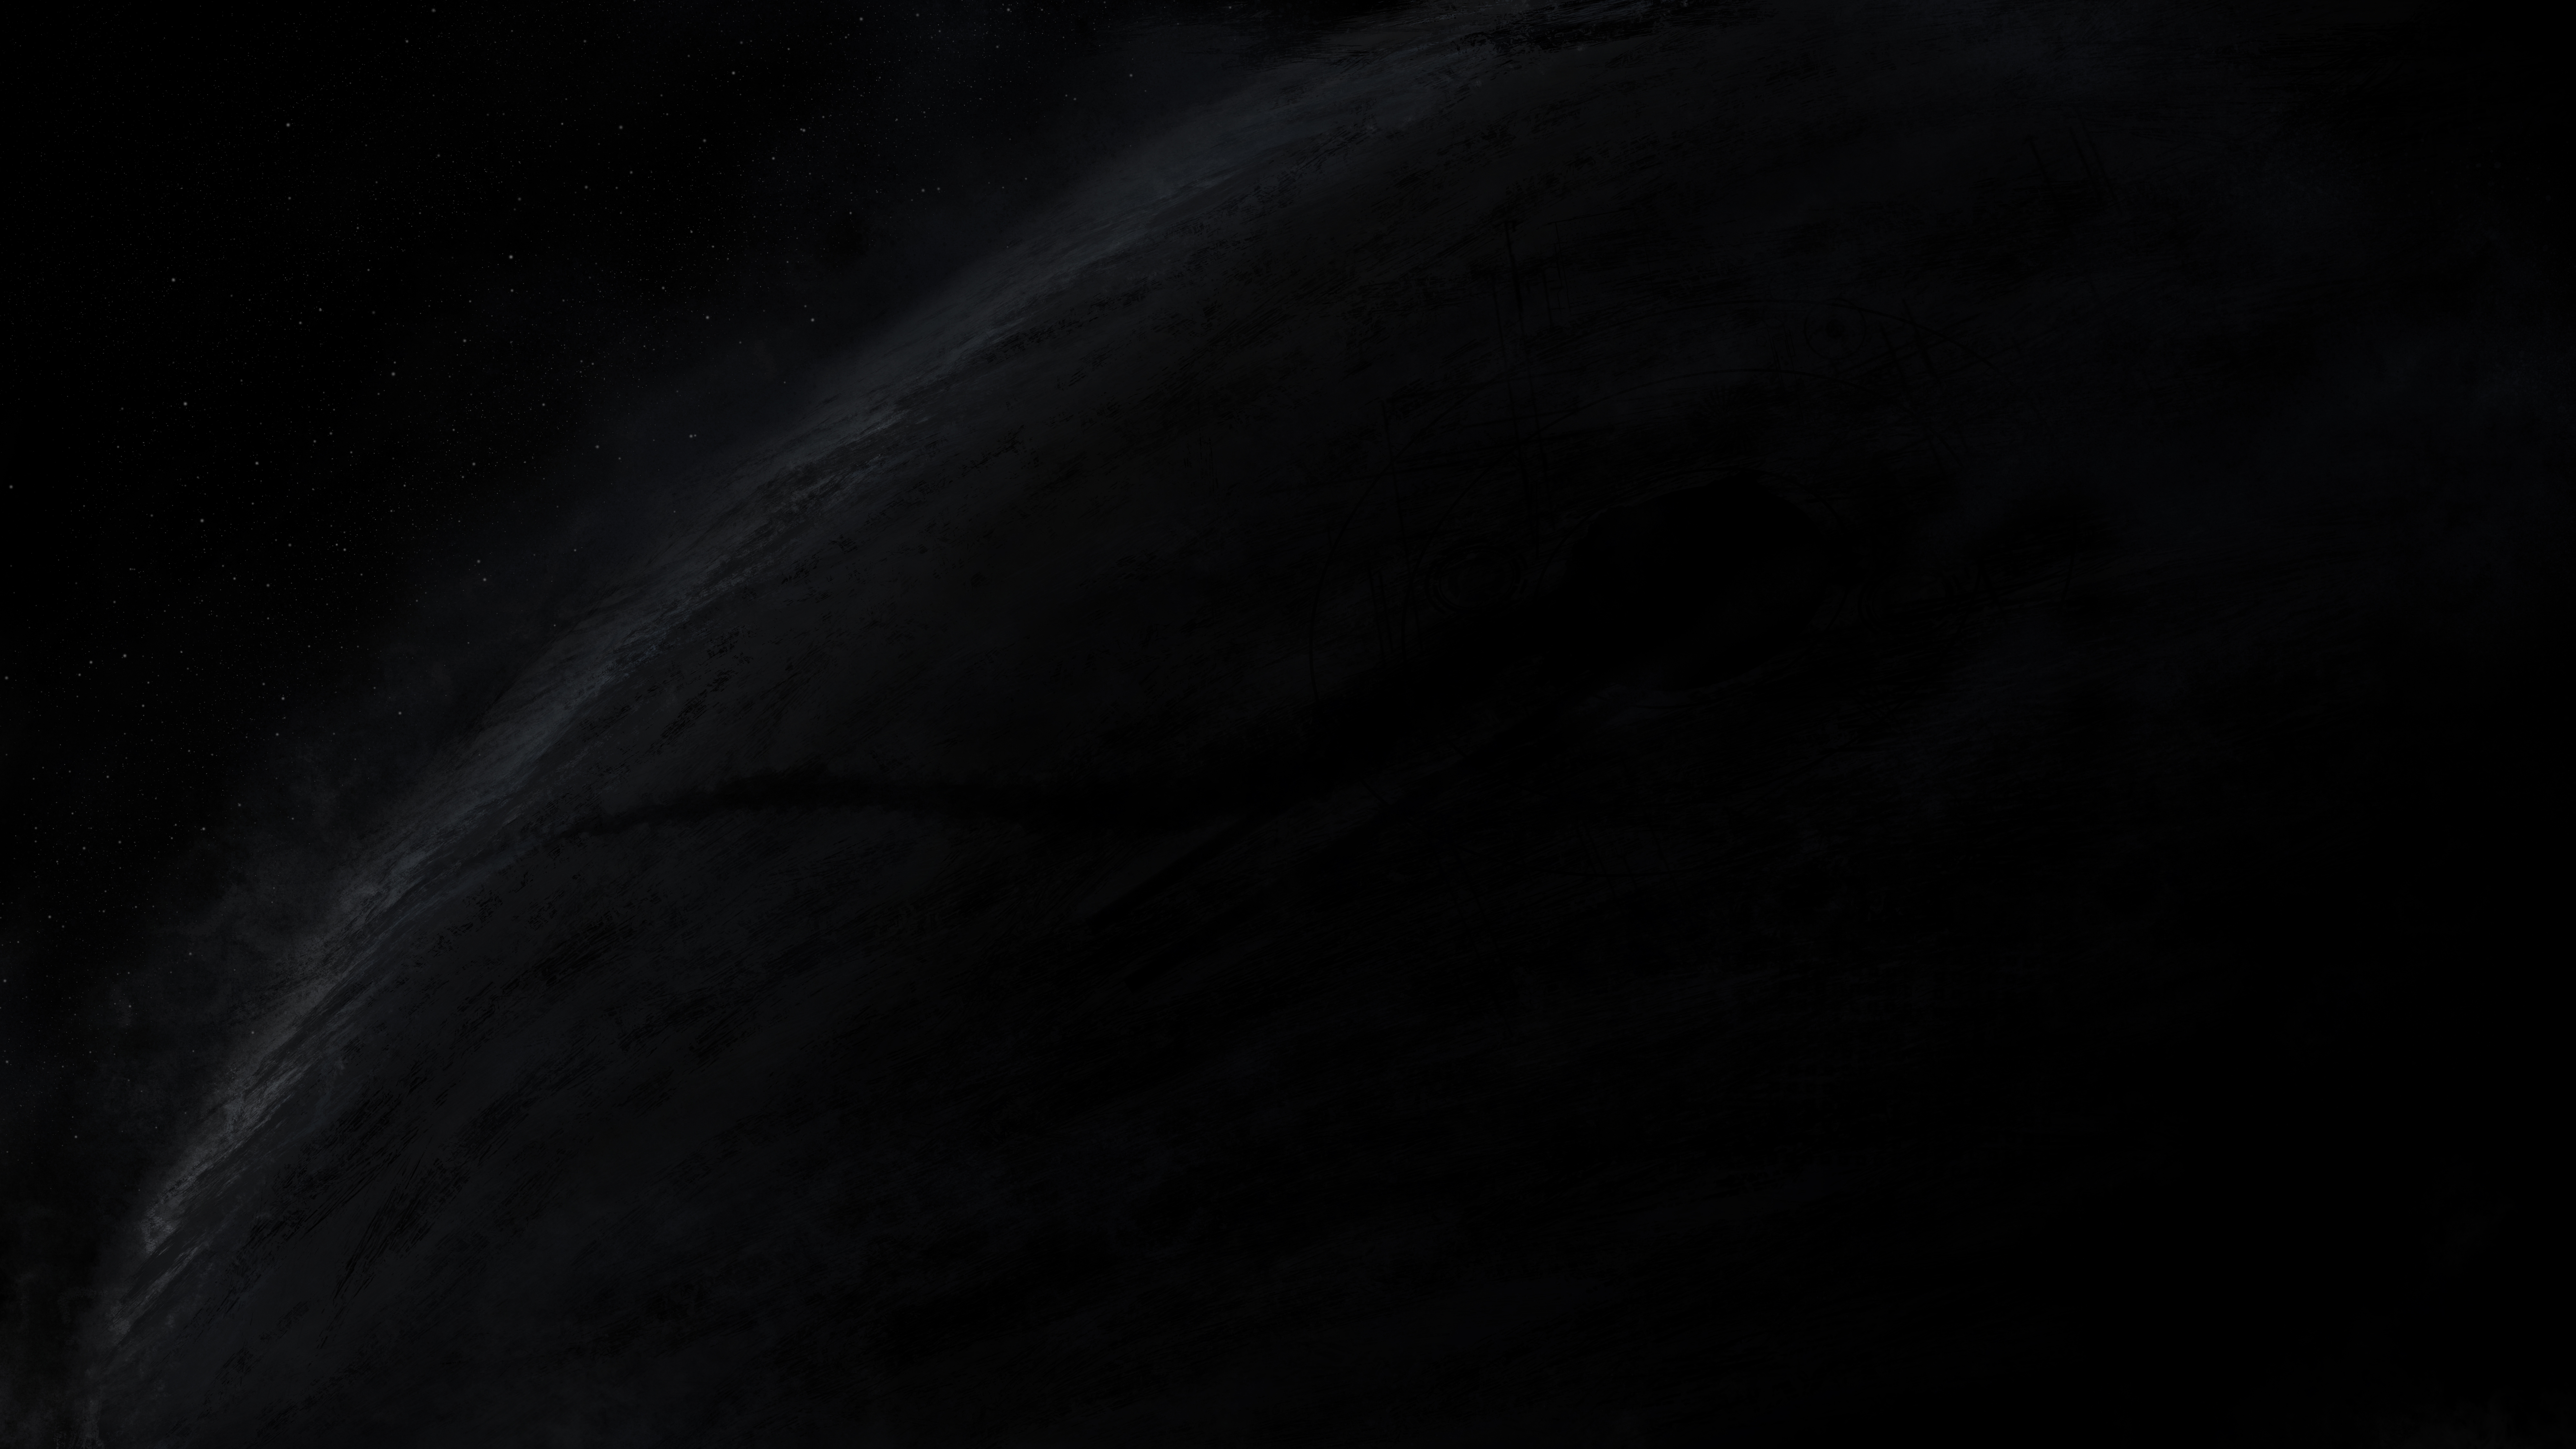 Simple Dark Wallpaper Posted By Samantha Tremblay